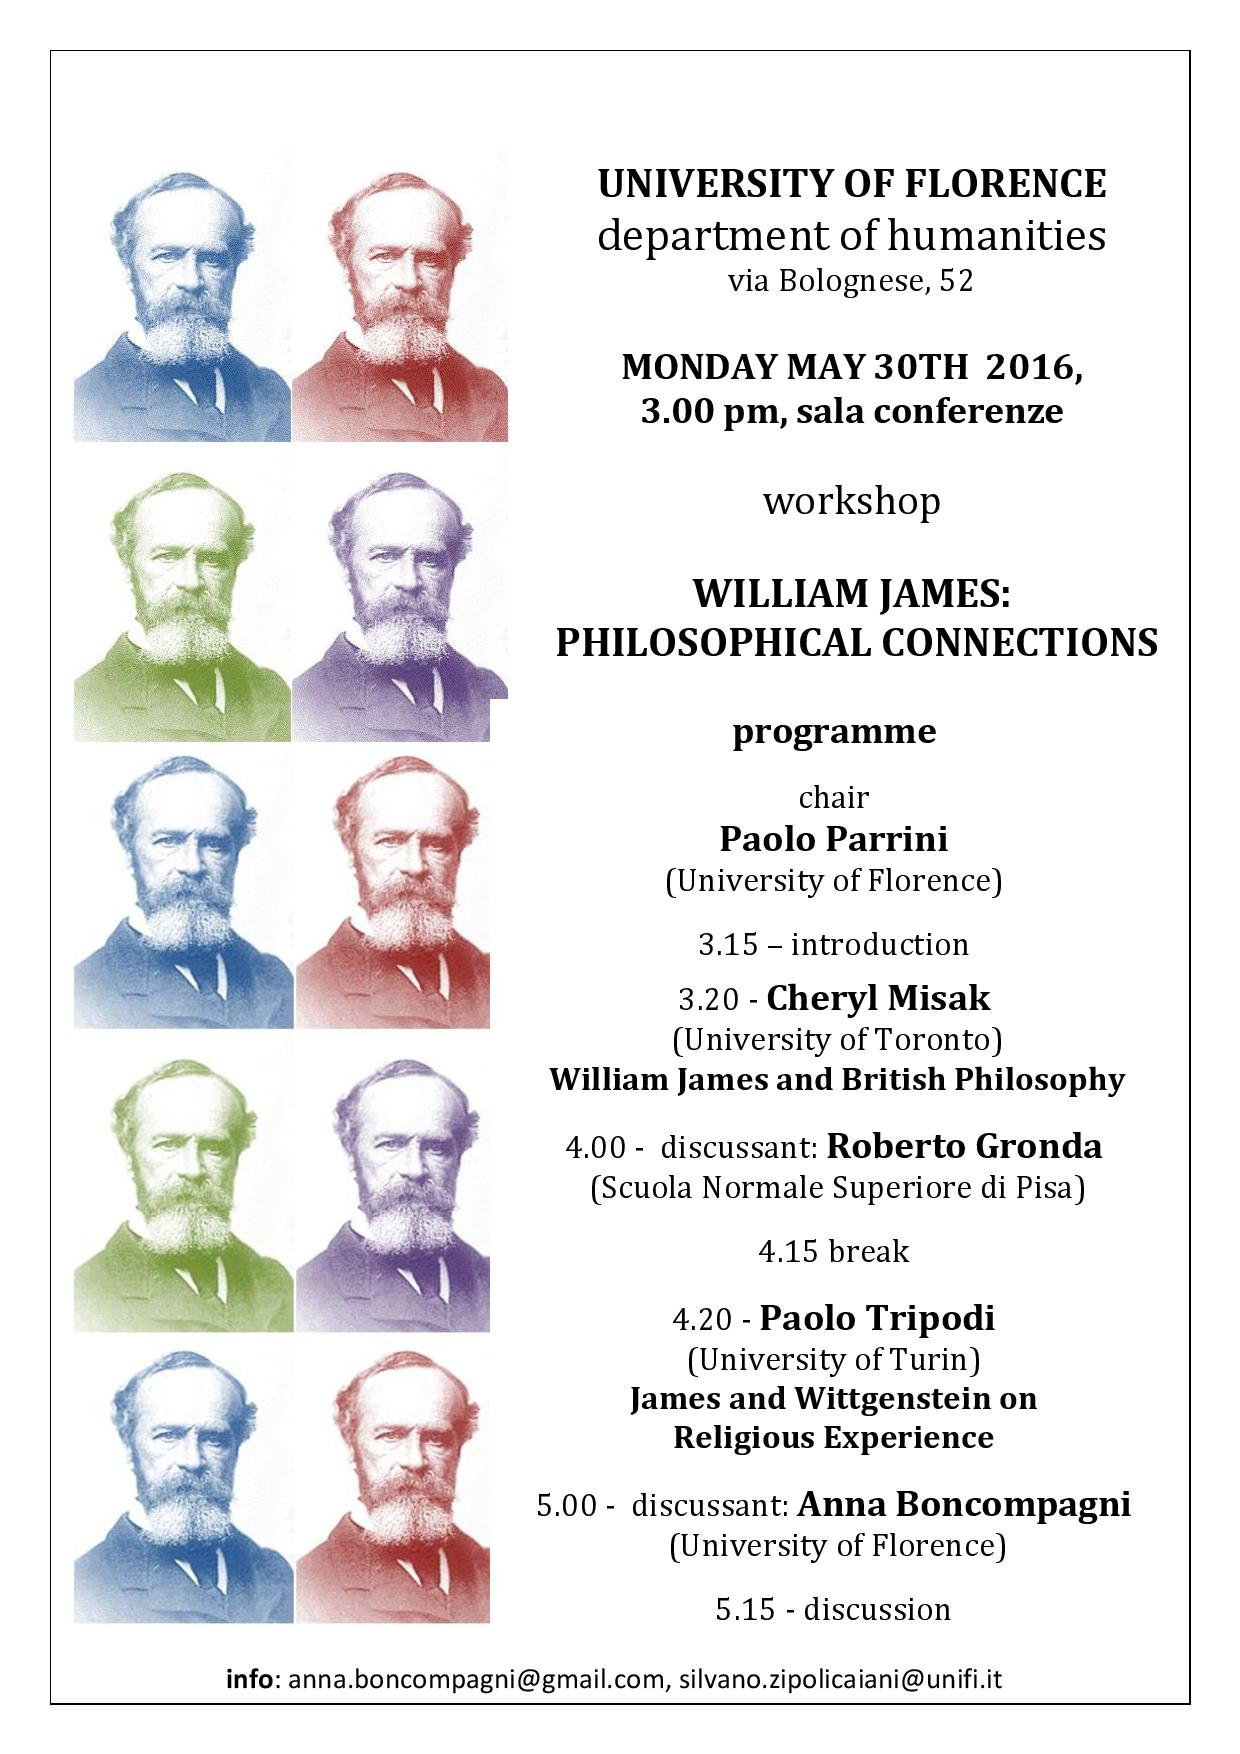 Events - William James: Philosophical Connections, Florence, 30 May 2016